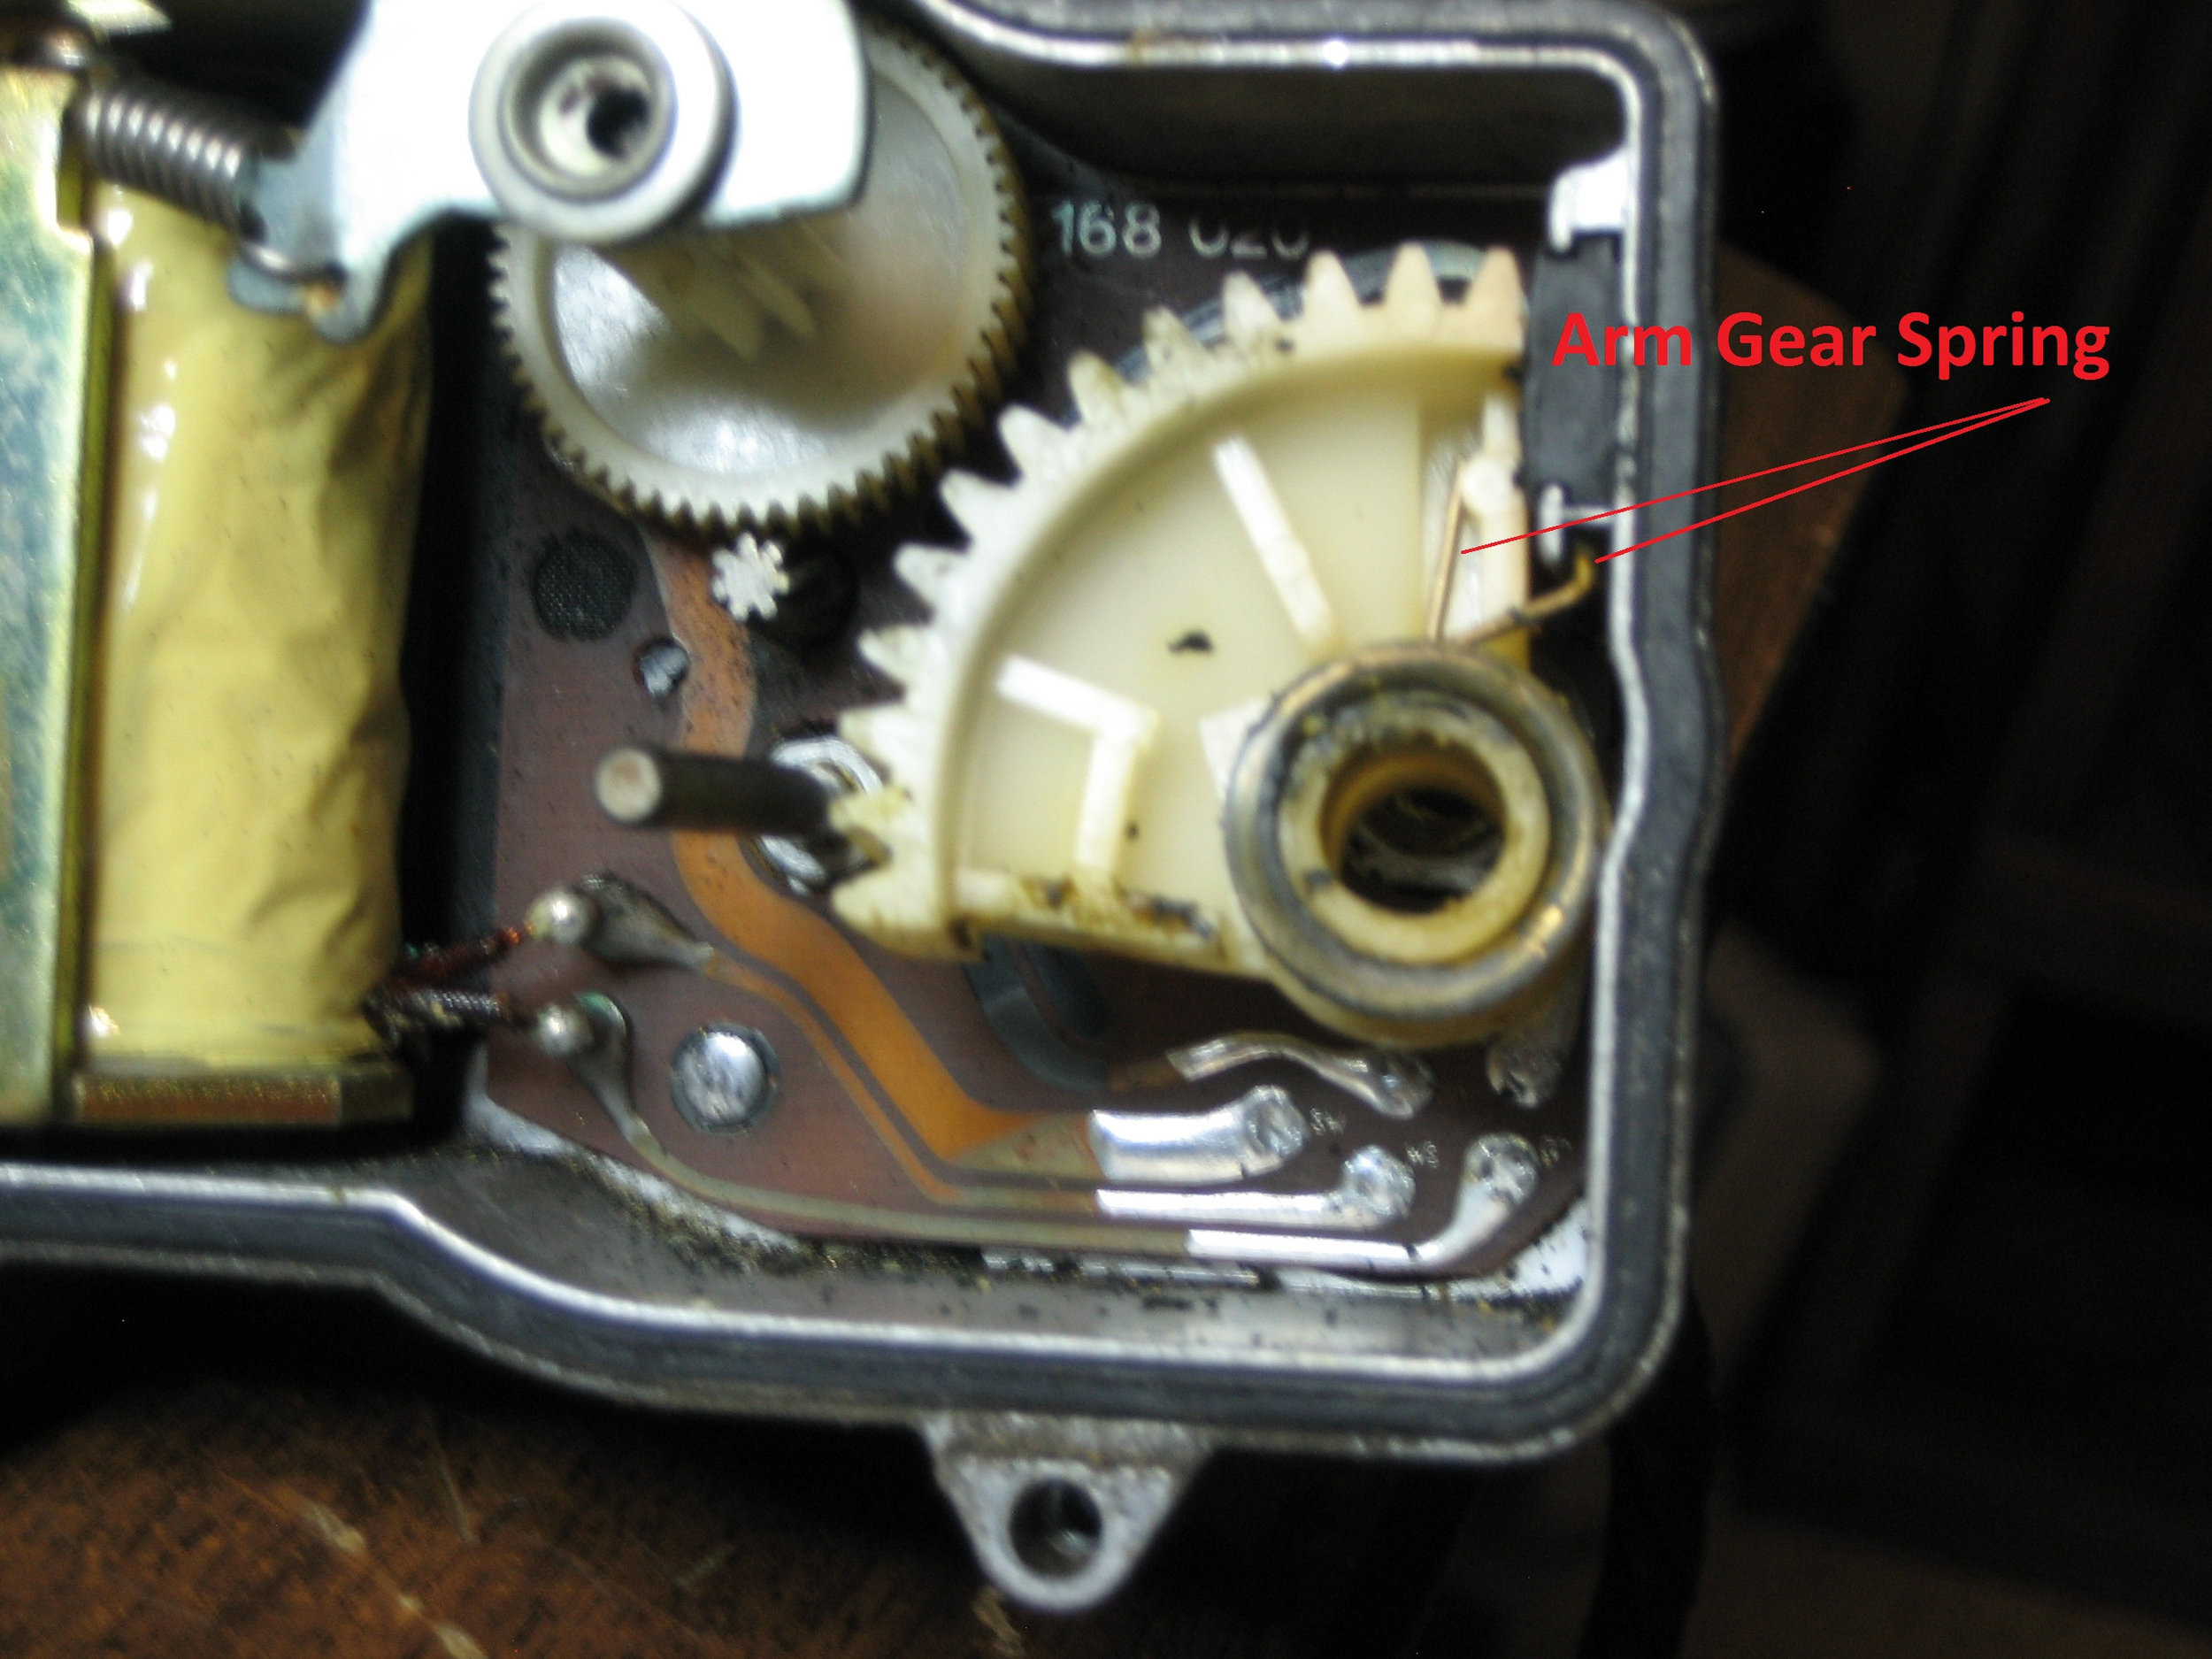 Actuator - Arm Gear Spring